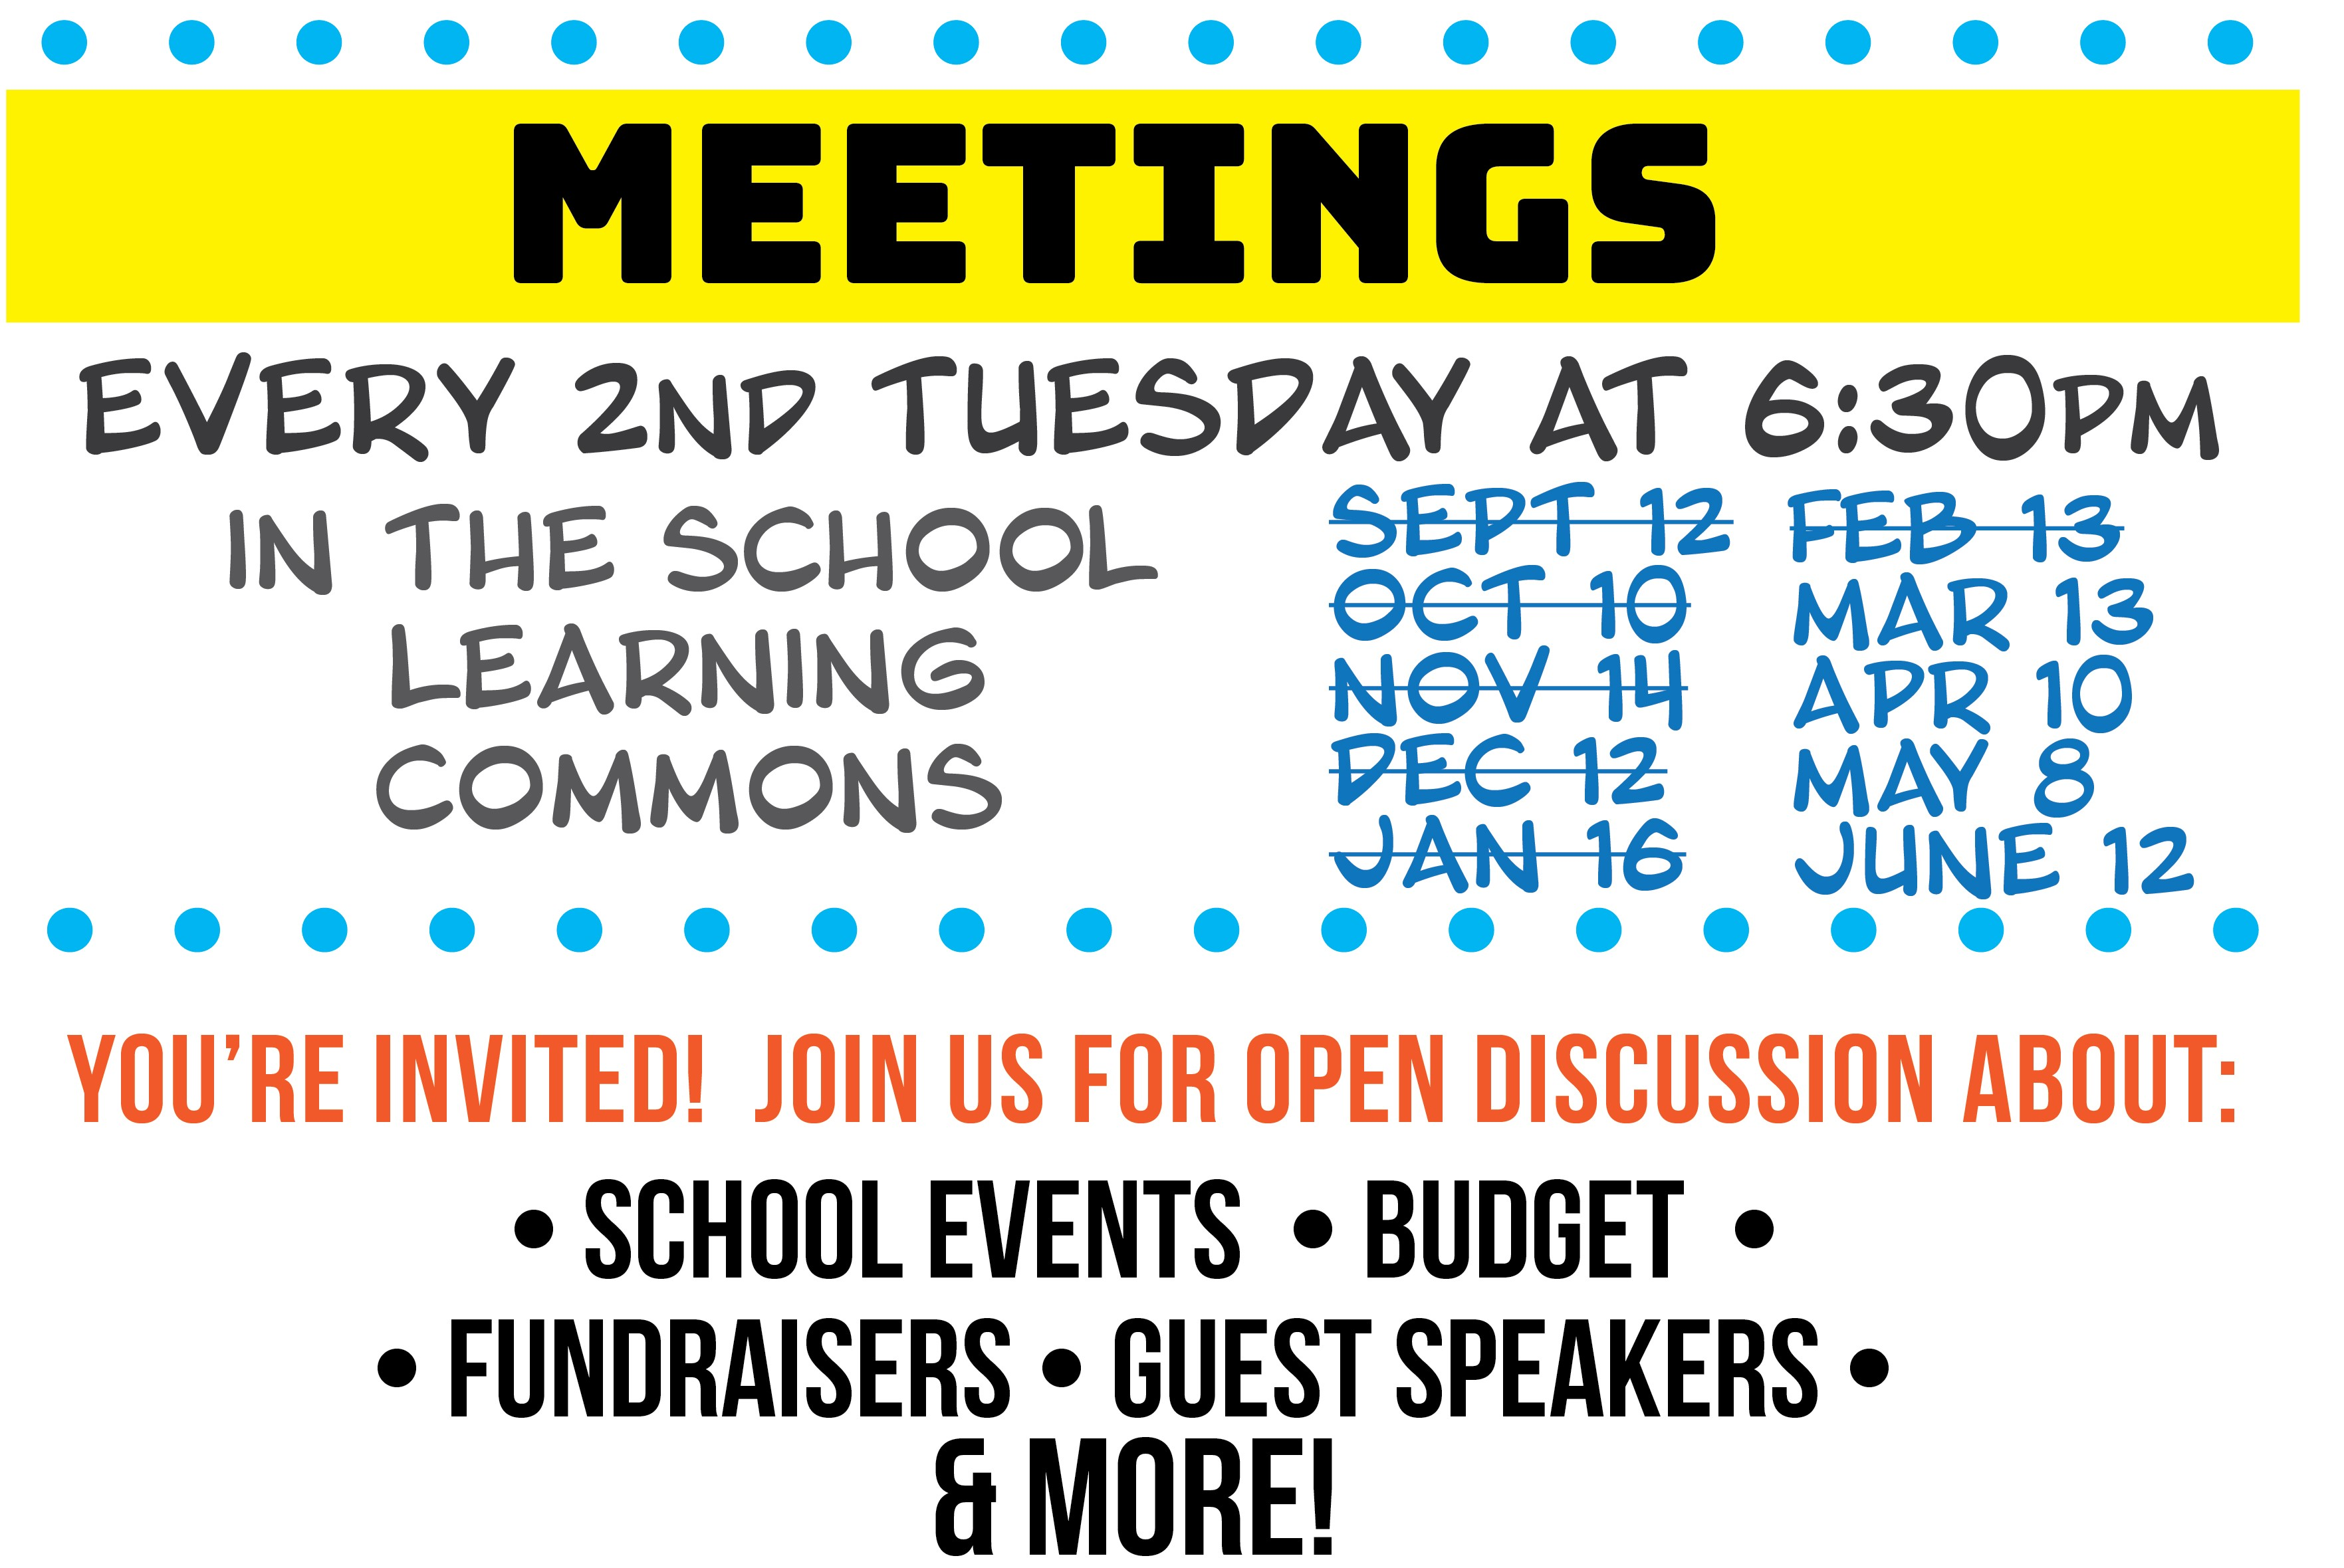 Pac Meeting Dates (also available on school public calendar)